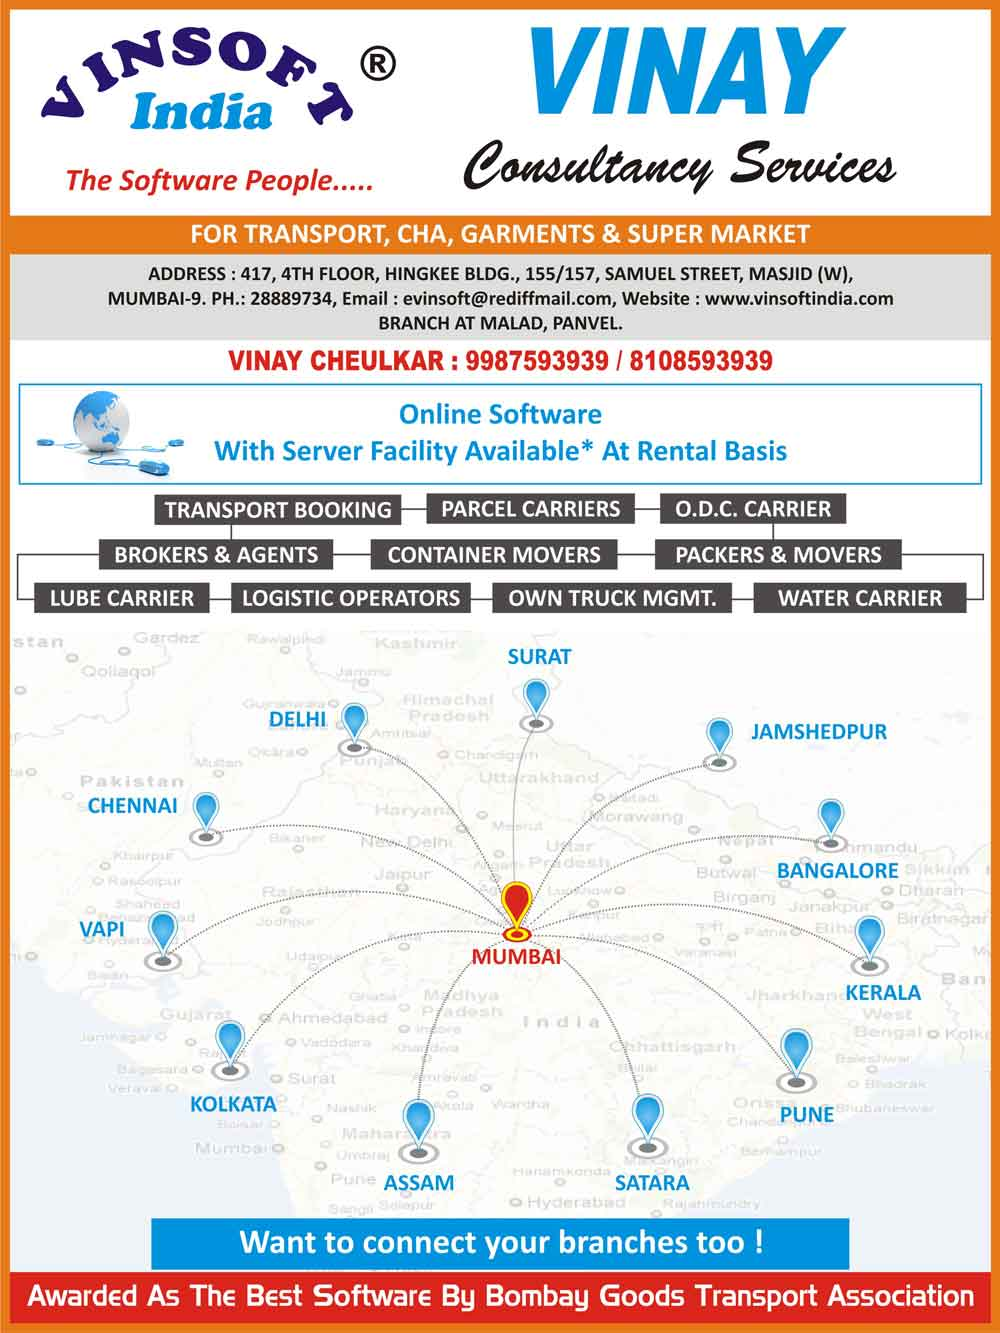 Vinay Consultancy Services